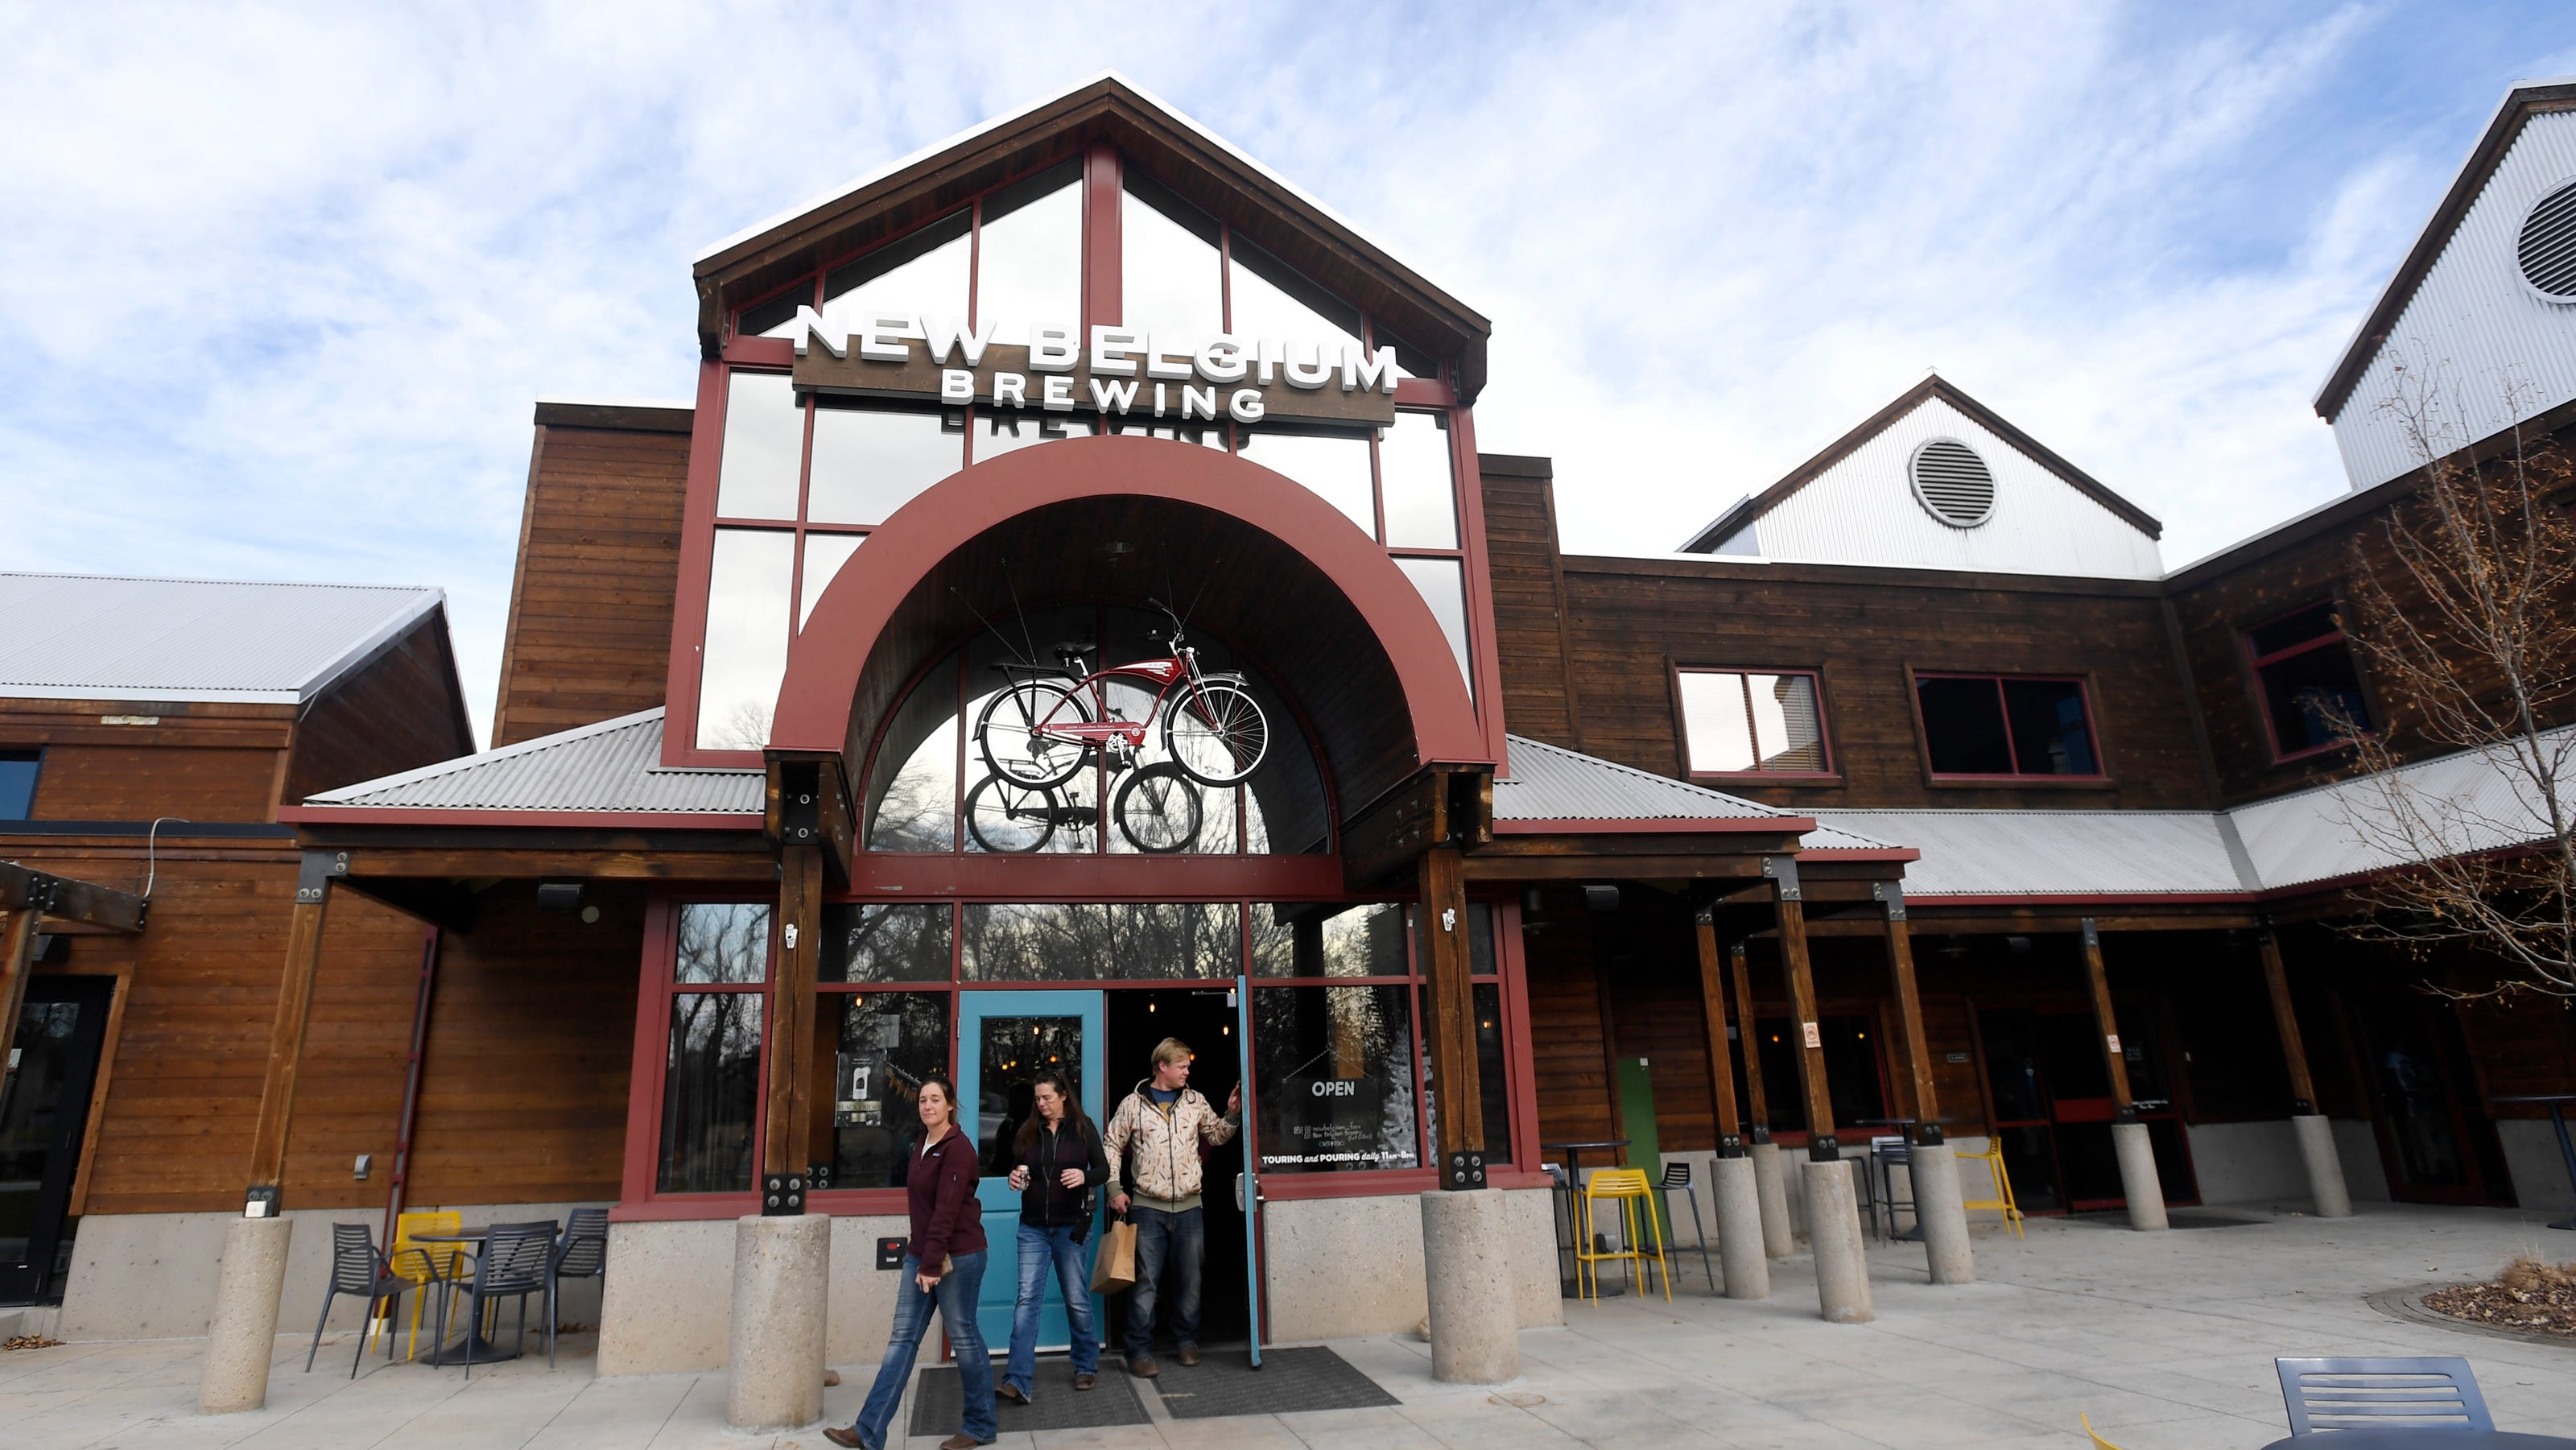 New Belgium reopening to the public Thursday after monthslong pandemic closure